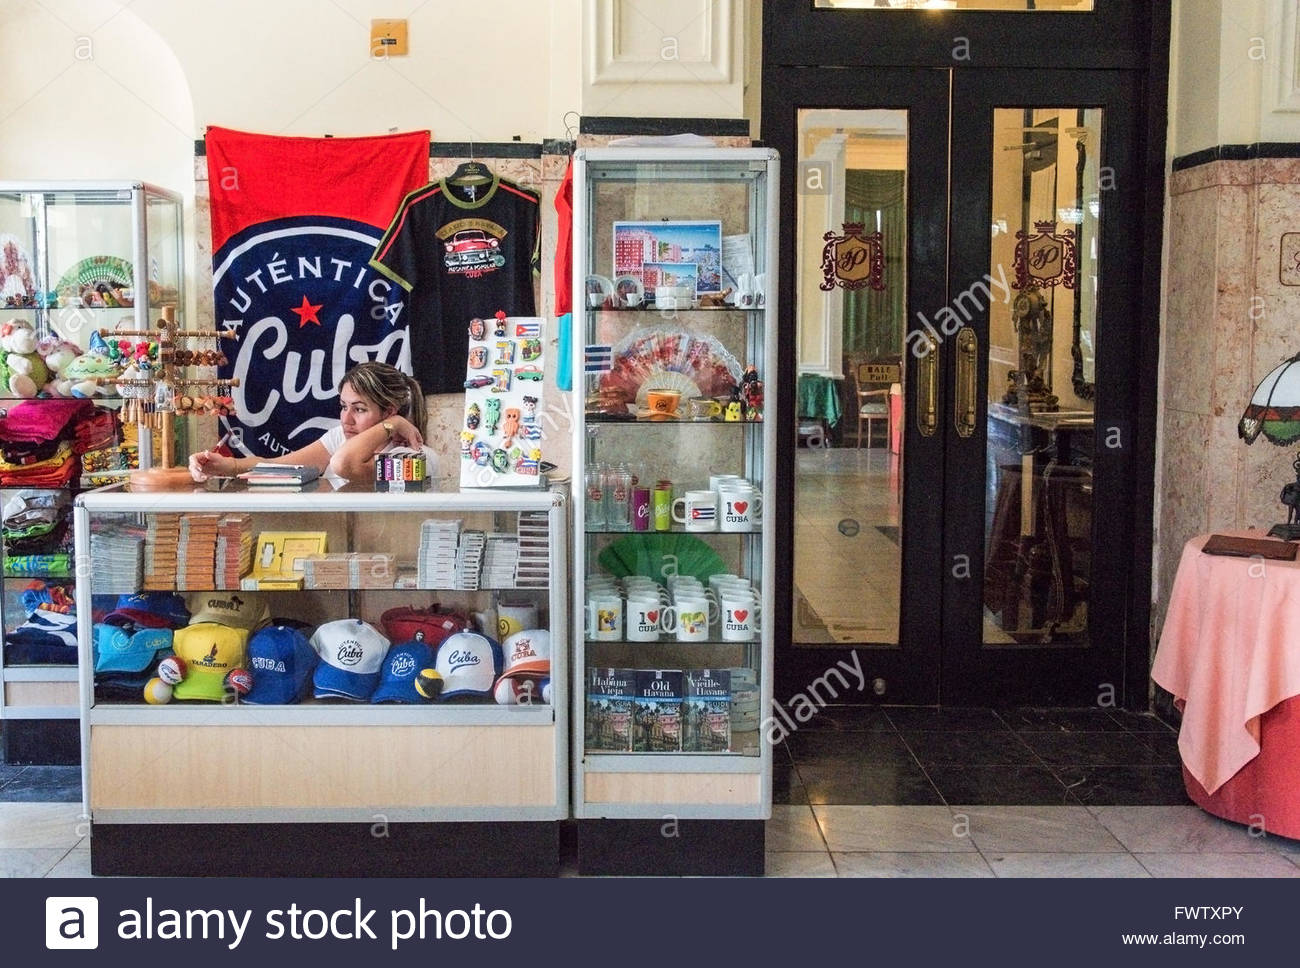 Cuban souvenirs stand selling hats and mugs. Most tourists enjoy purchasing souvenirs as memory. - Stock Image